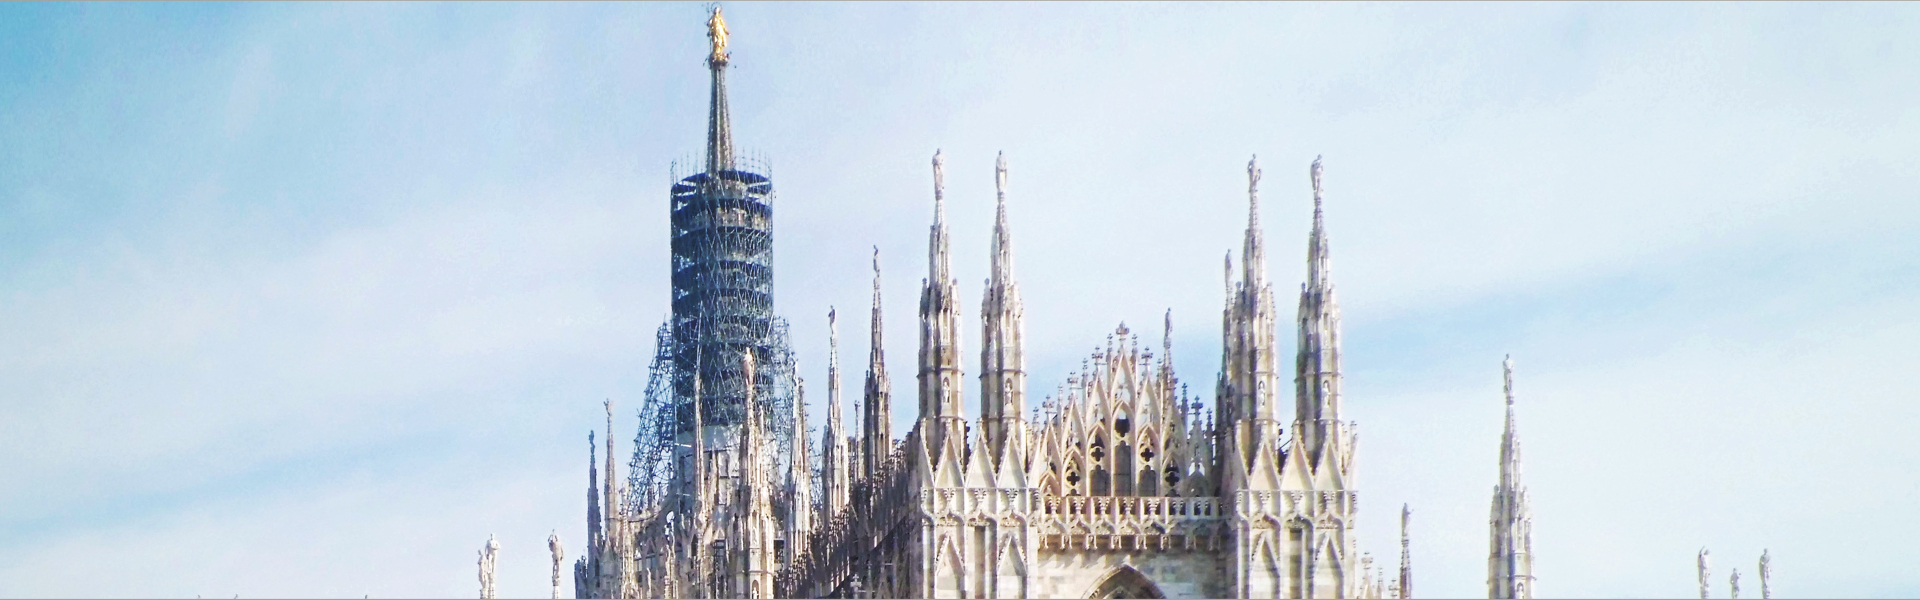 Milan Cathedral Spire 1 1920 600